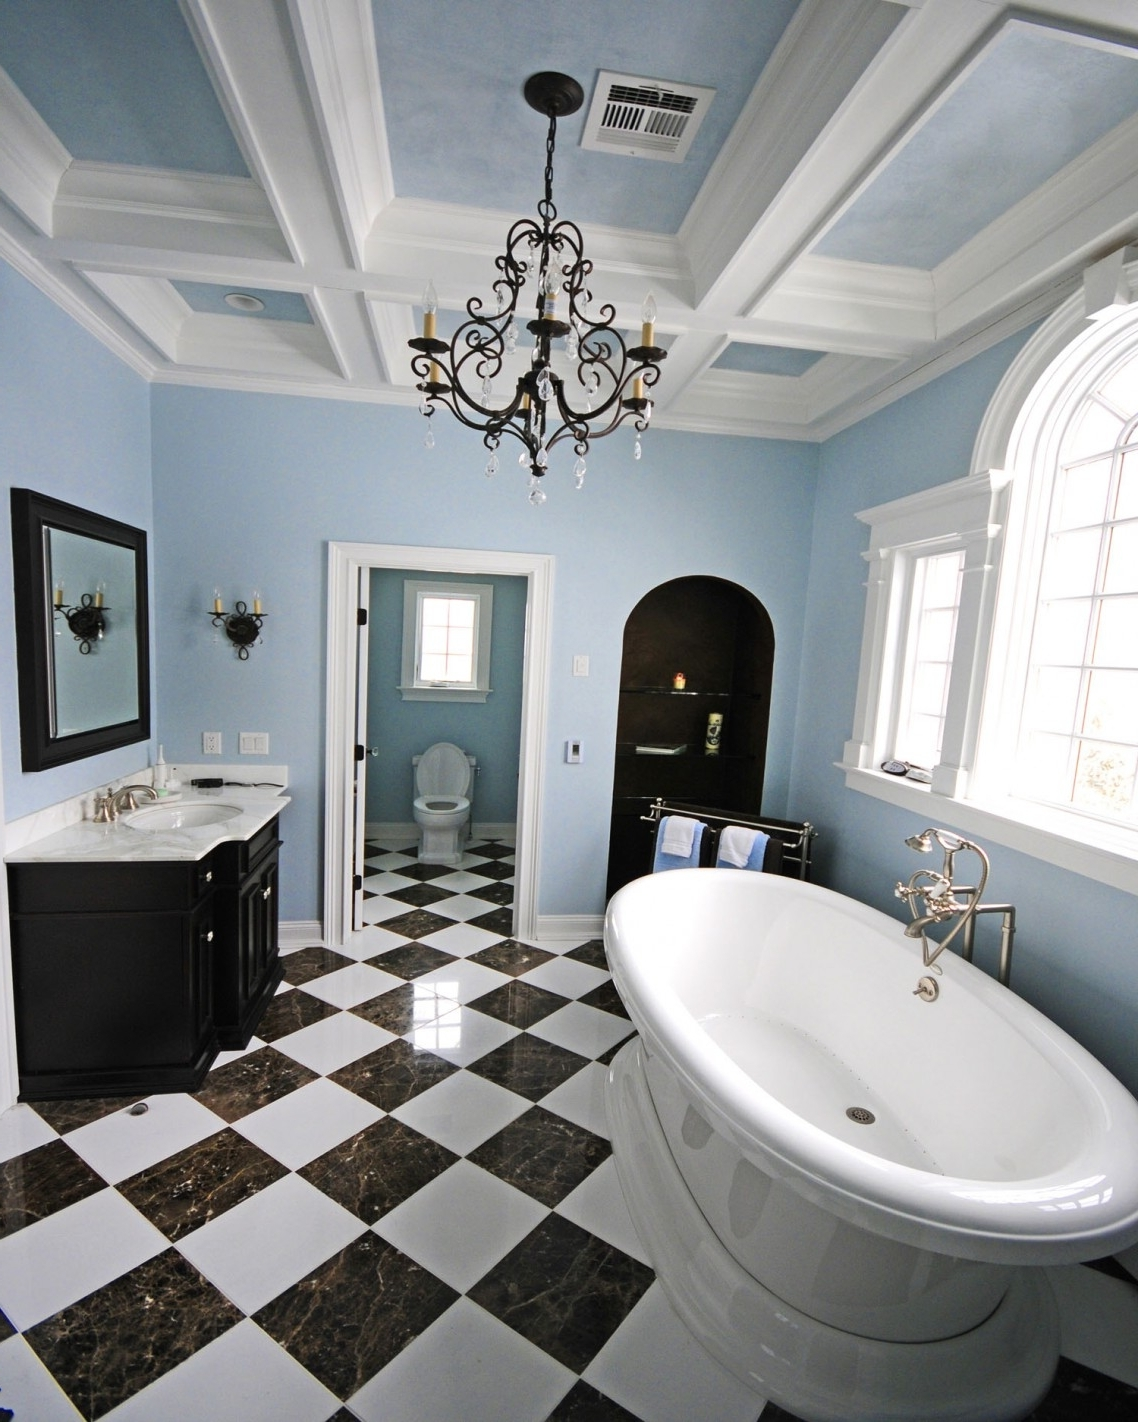 Fashionable Bathroom Chandeliers In Bathroom Ideas: Bathroom Chandeliers With Black And White Tiles (View 13 of 15)